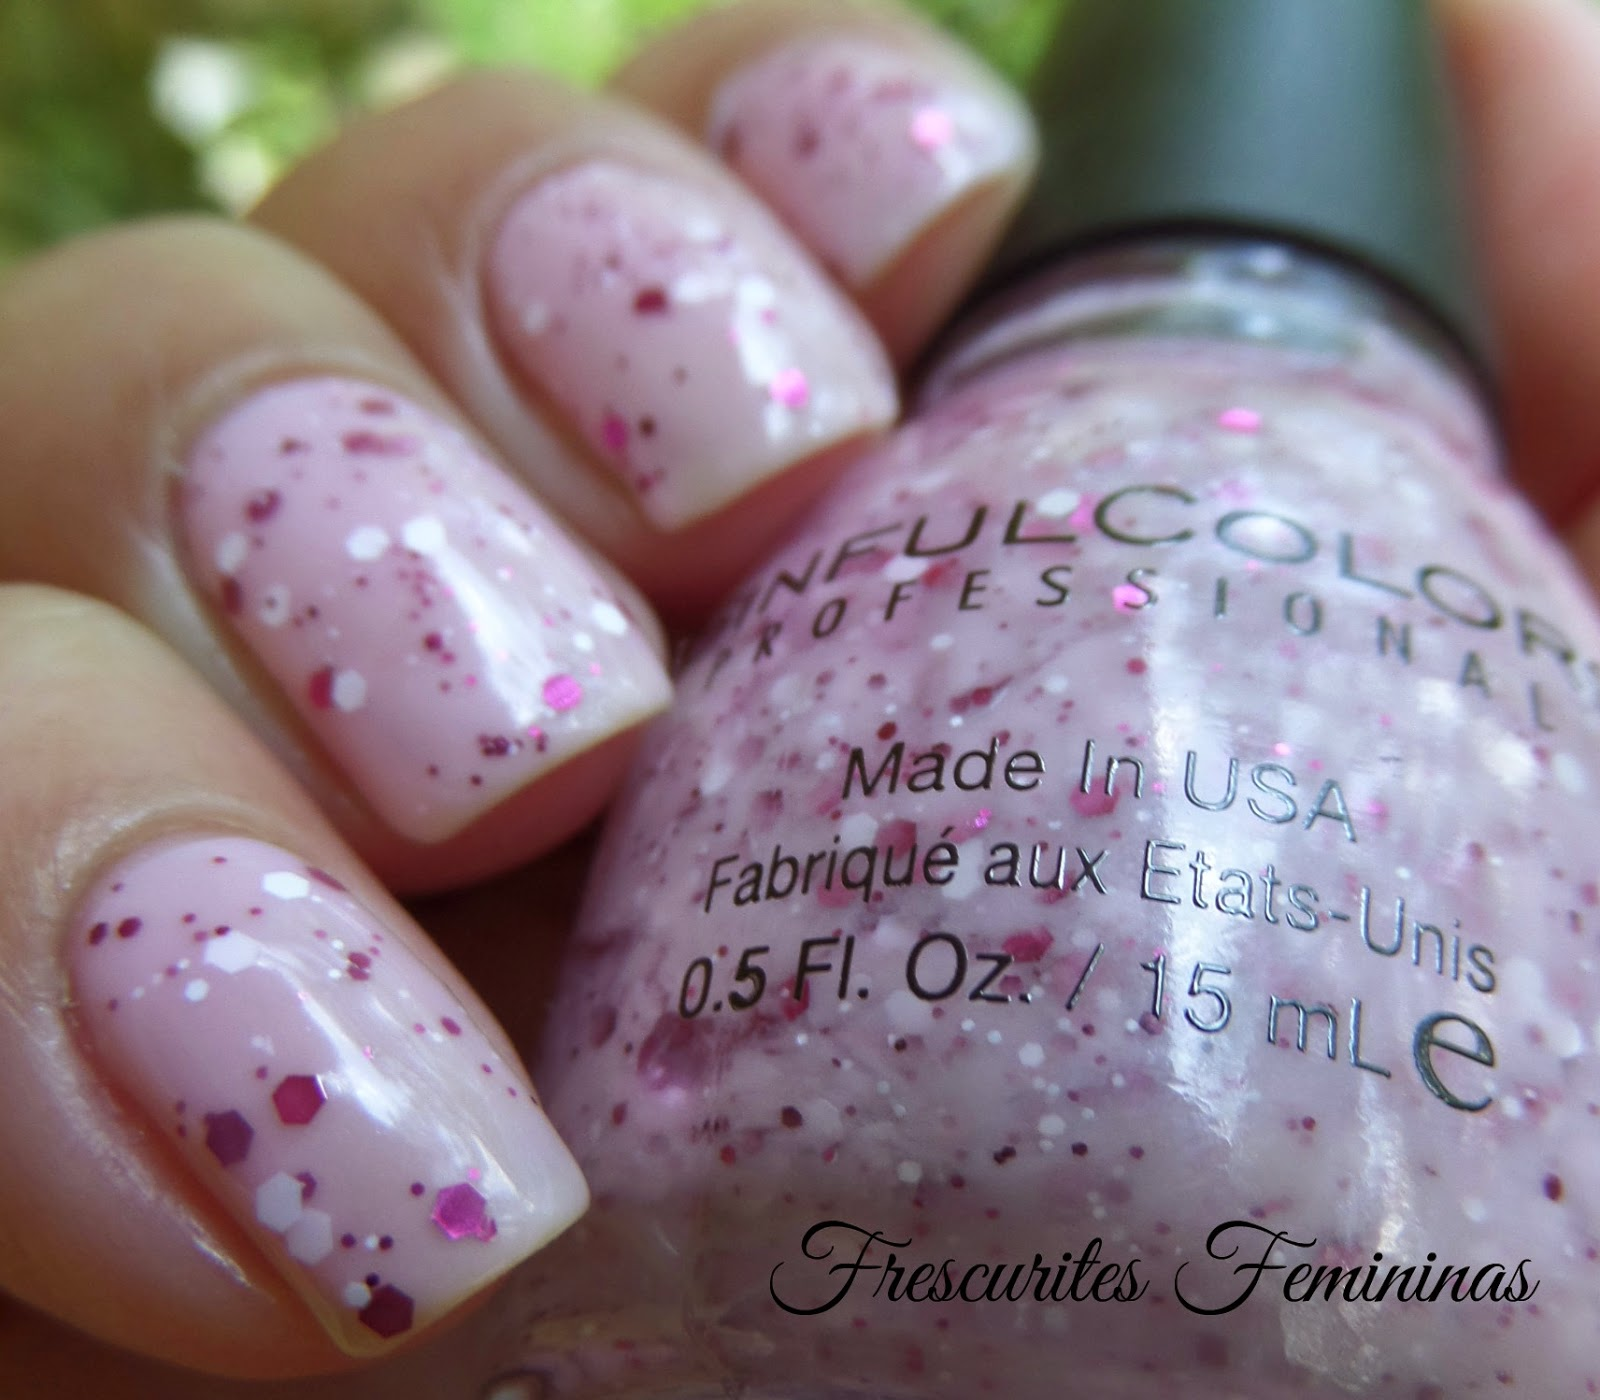 Sinful Colors, Flower Power,Bloomblast, Swatch, Nail swatch, Frescurites Femininas